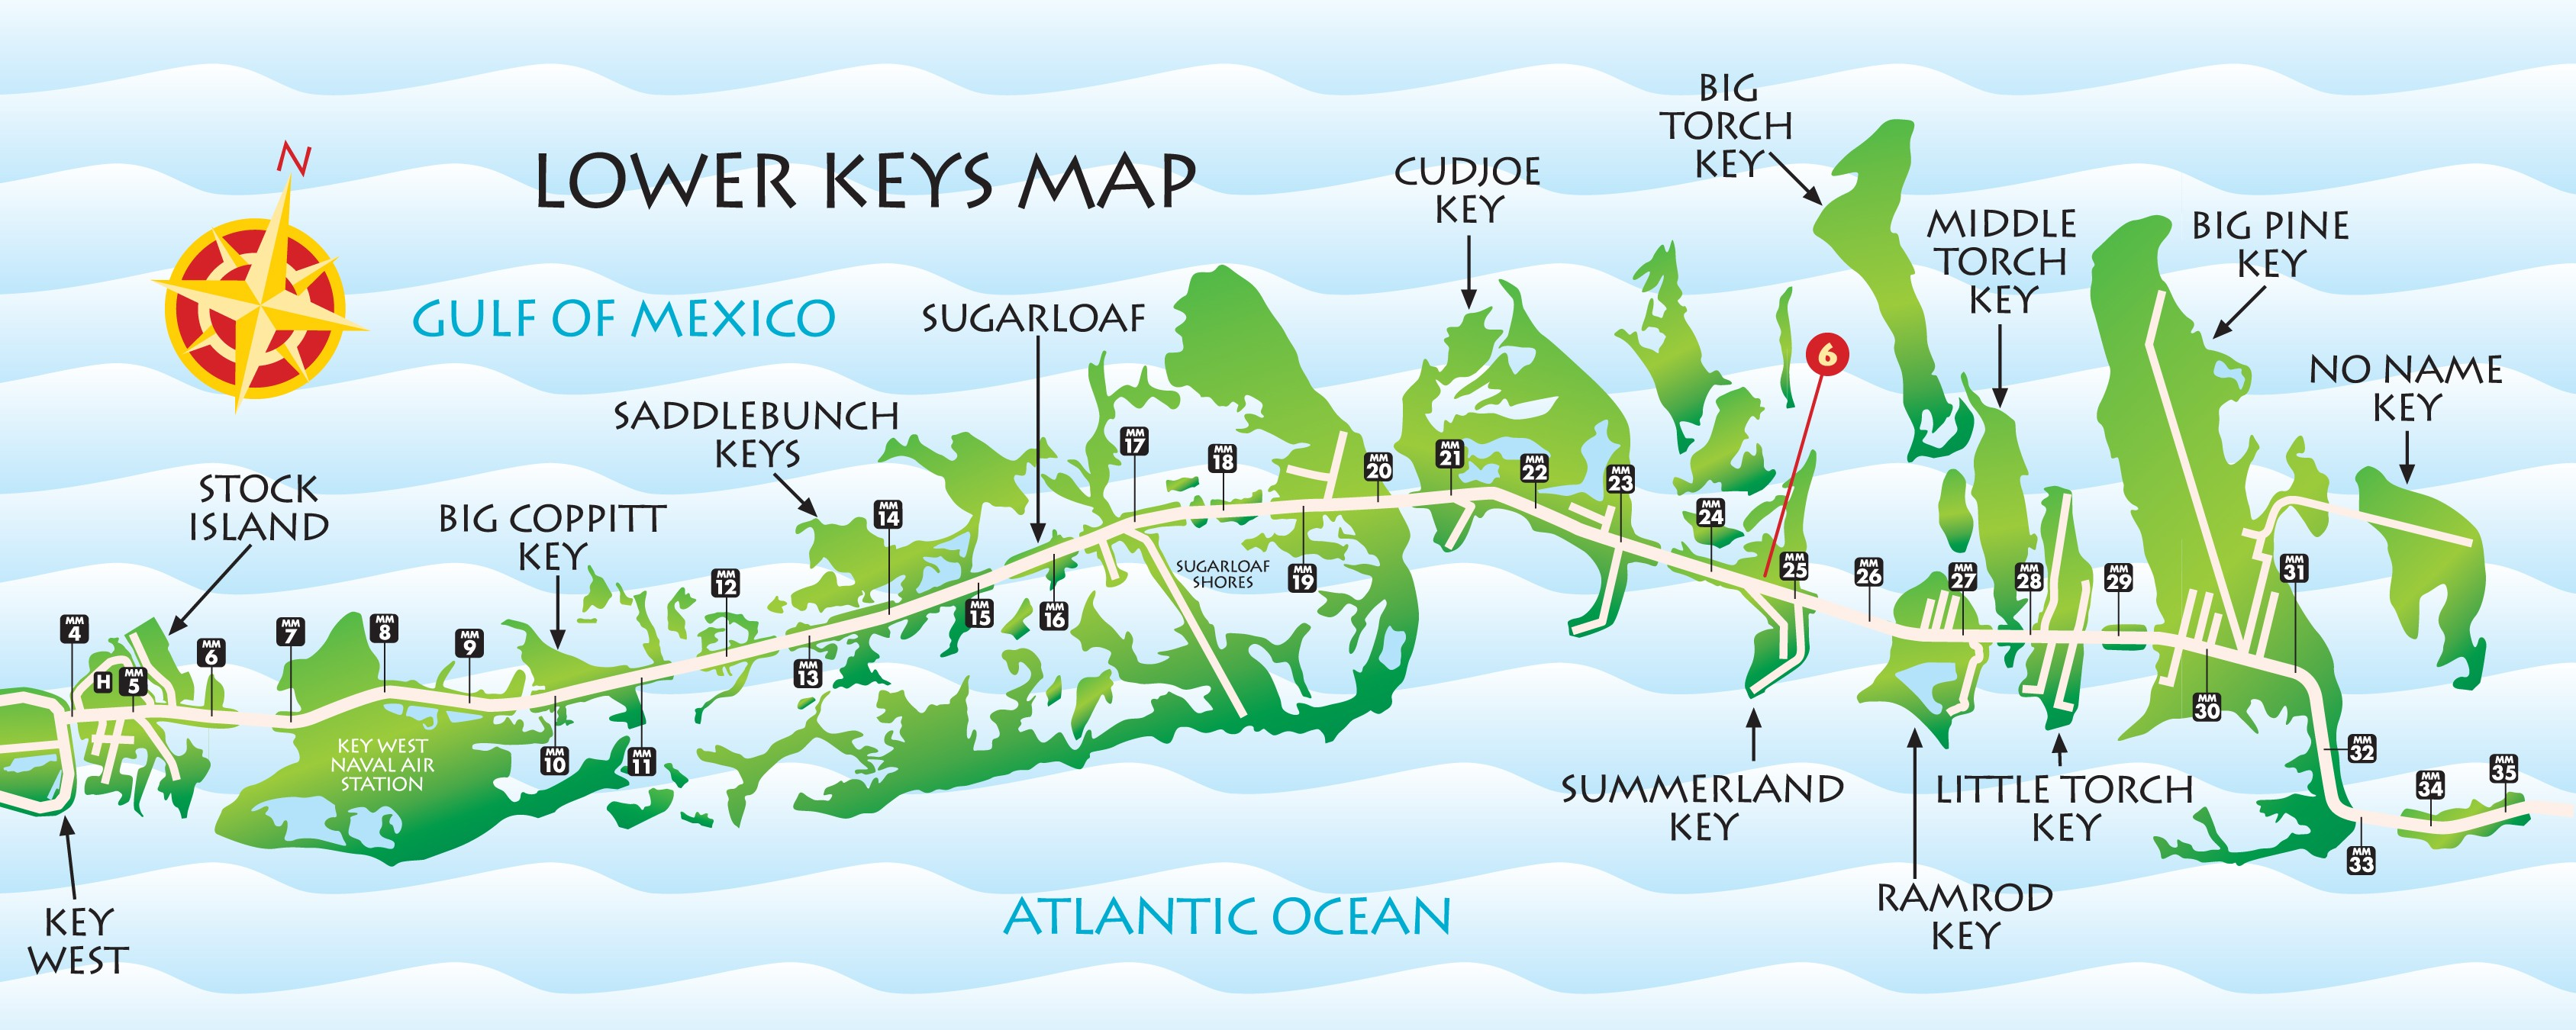 hotels key west map with Lower Keys Map 2 on Map Icon 0 together with Omni Resort At Ch ionsgate likewise Key West Photo Of The Day Sunset Key Beach Cottages additionally Maps as well Keysdiver.